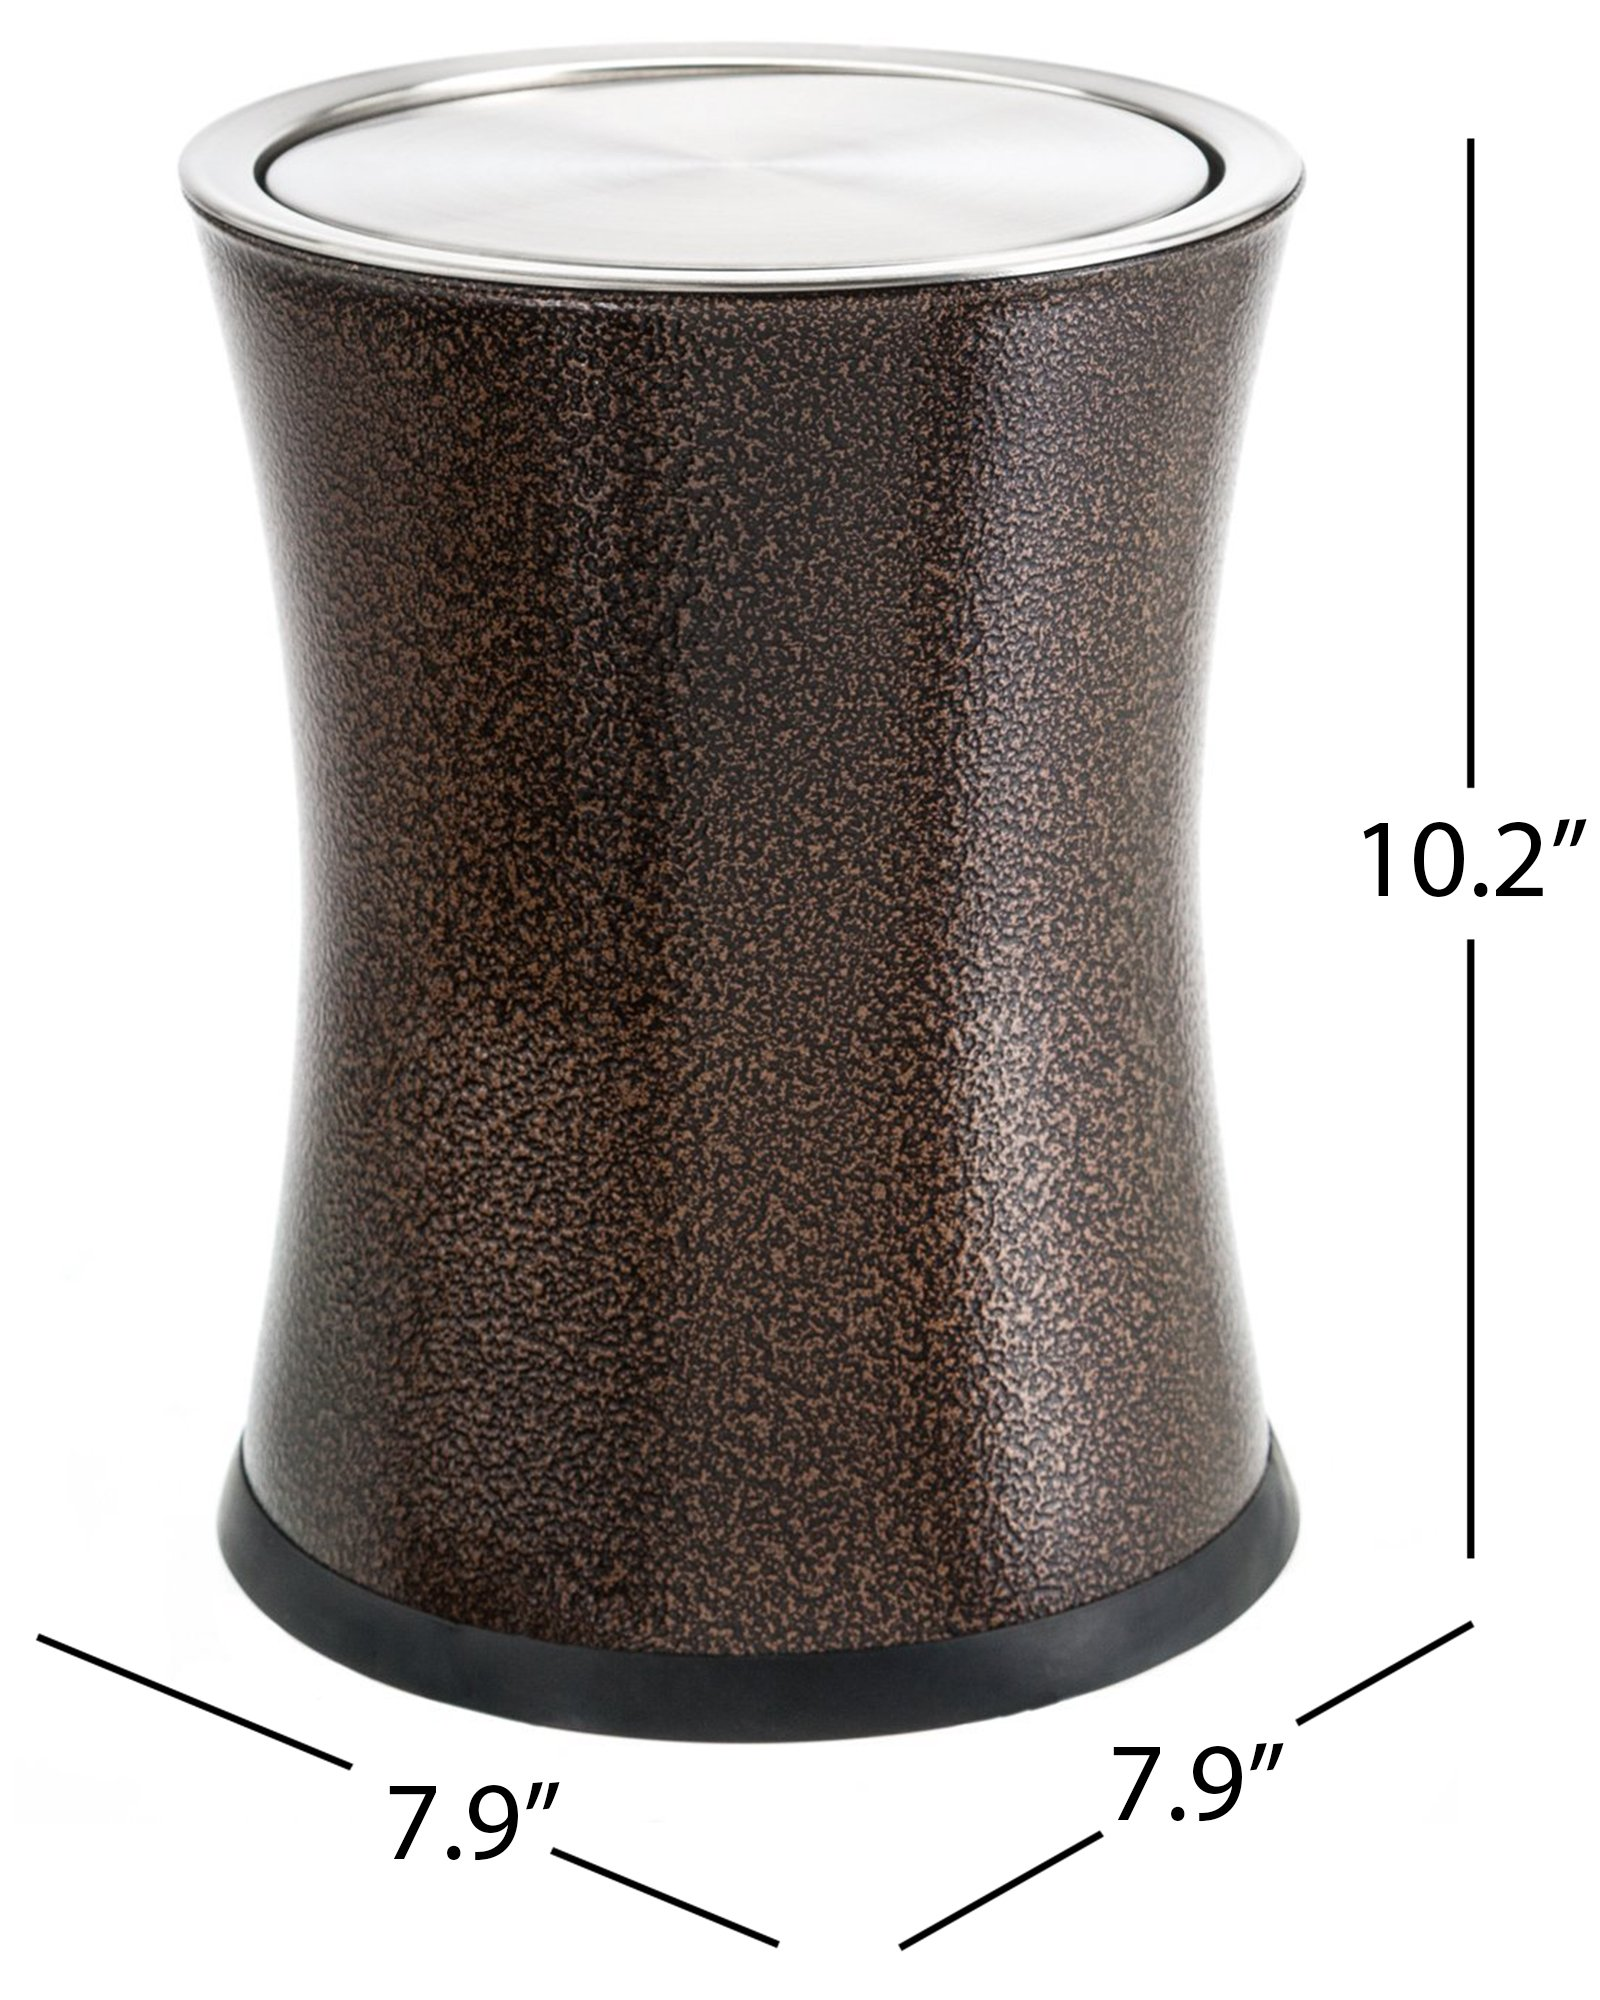 Bennett ''Swivel-A-Lid'' Small Trash Can, Metal Attractive 'Center-Inset' Designed Wastebasket, Modern Home Décor, Round Shape (Brown)